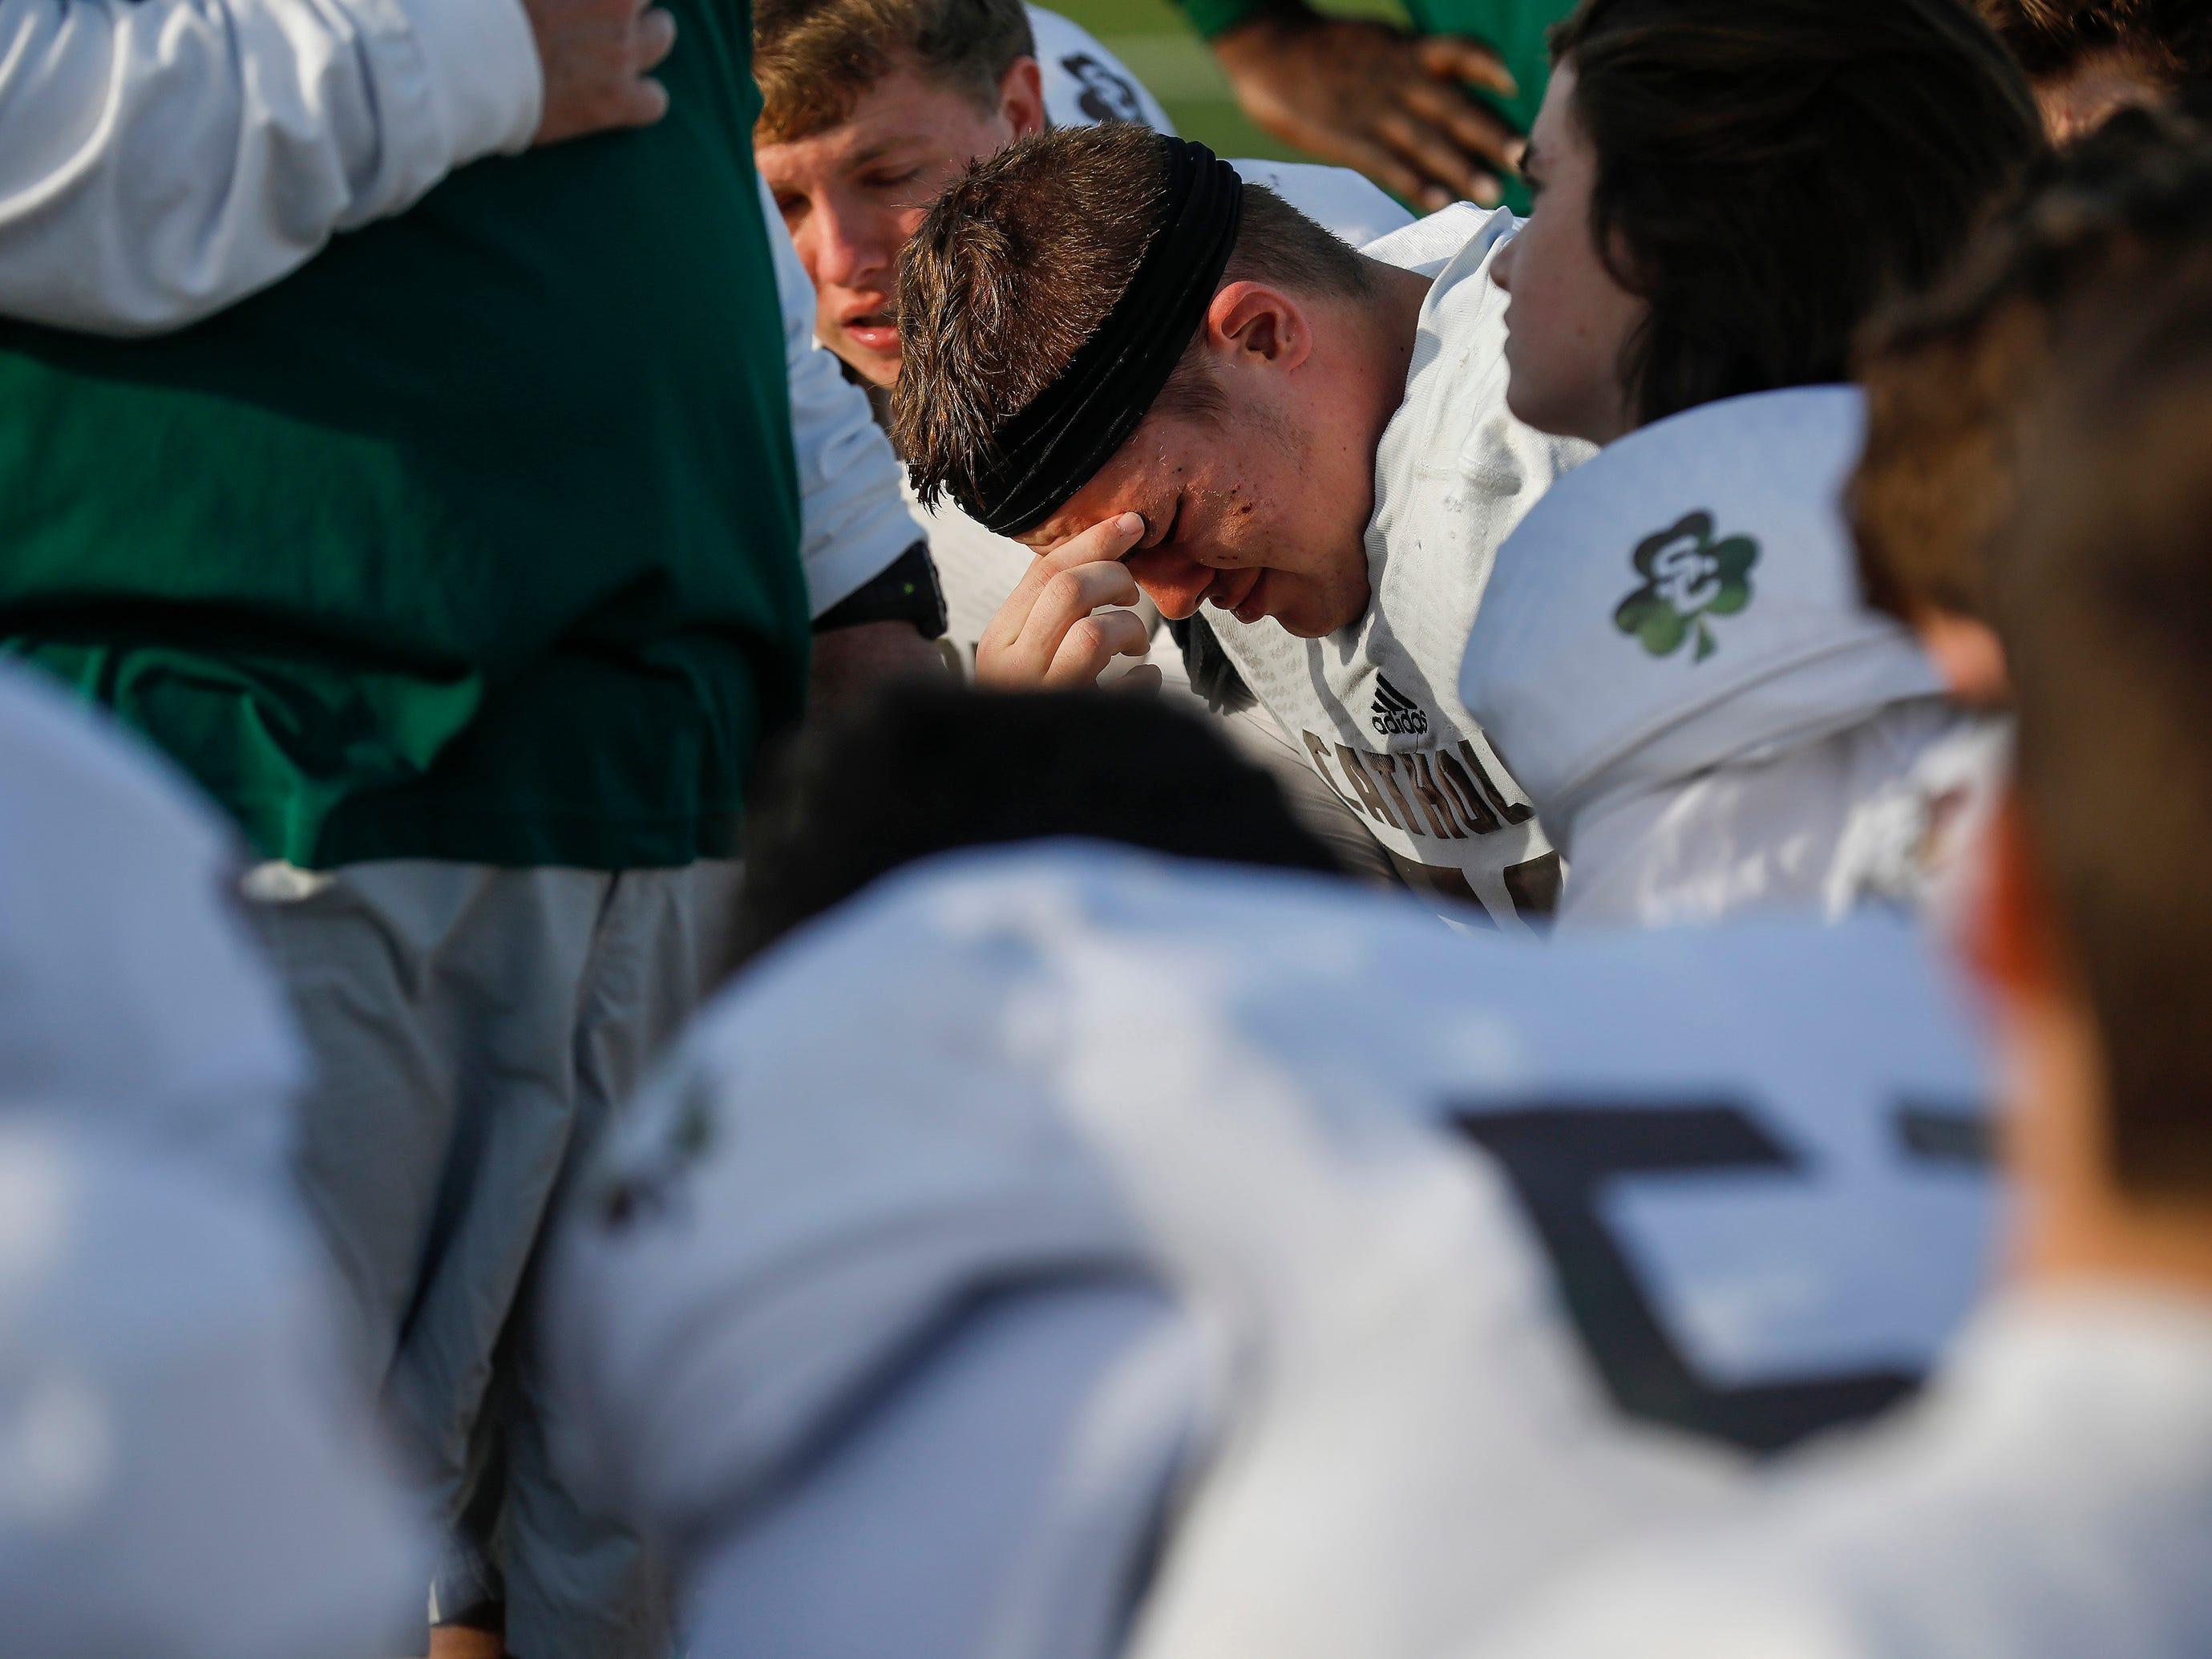 Kye Alms, of Springfield Catholic, center, hangs his head after the Irish's 26-18 loss in the Class 3 Quarterfinal game against Mount Vernon at Mount Vernon High School on Saturday, Nov. 17, 2018.